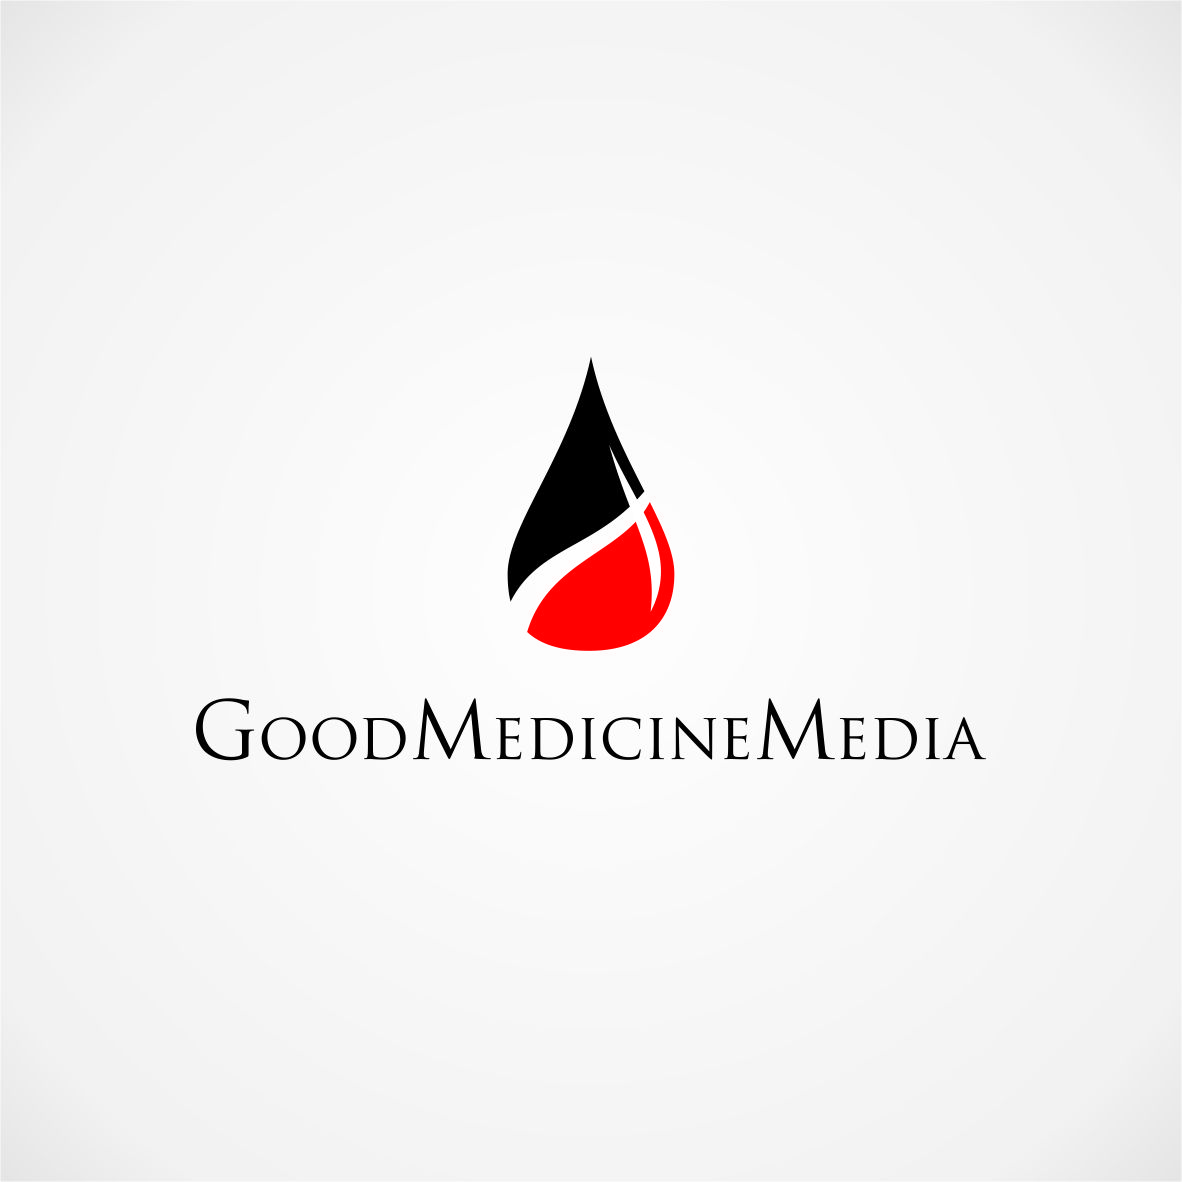 Logo Design by arteo_design - Entry No. 242 in the Logo Design Contest Good Medicine Media Logo Design.